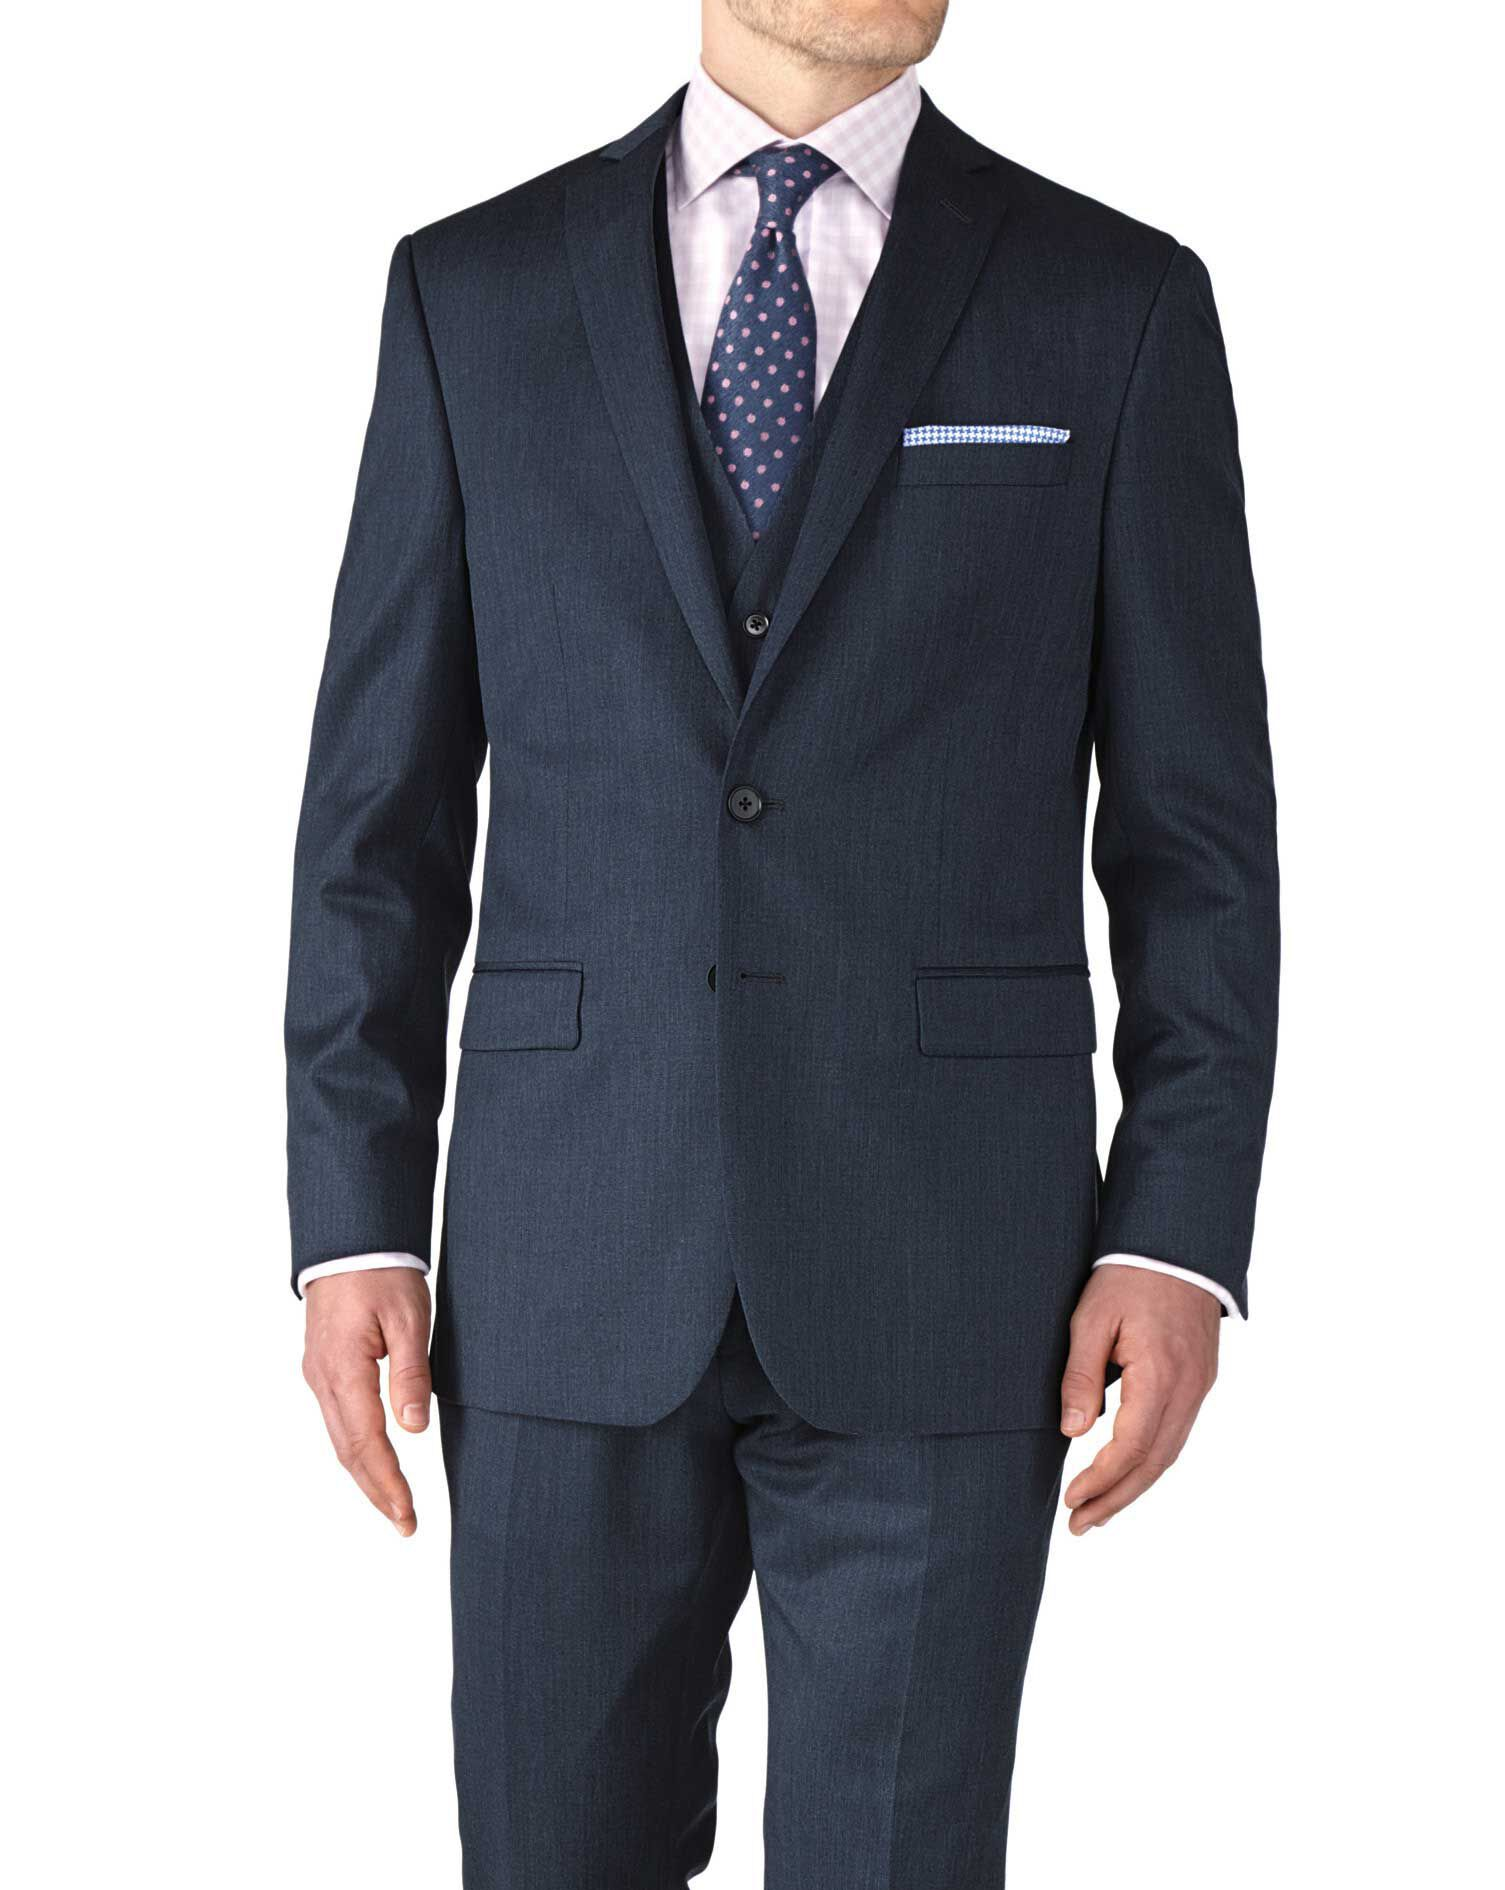 Airforce Blue Slim Fit Twill Business Suit Wool Jacket Size 38 Regular by Charles Tyrwhitt